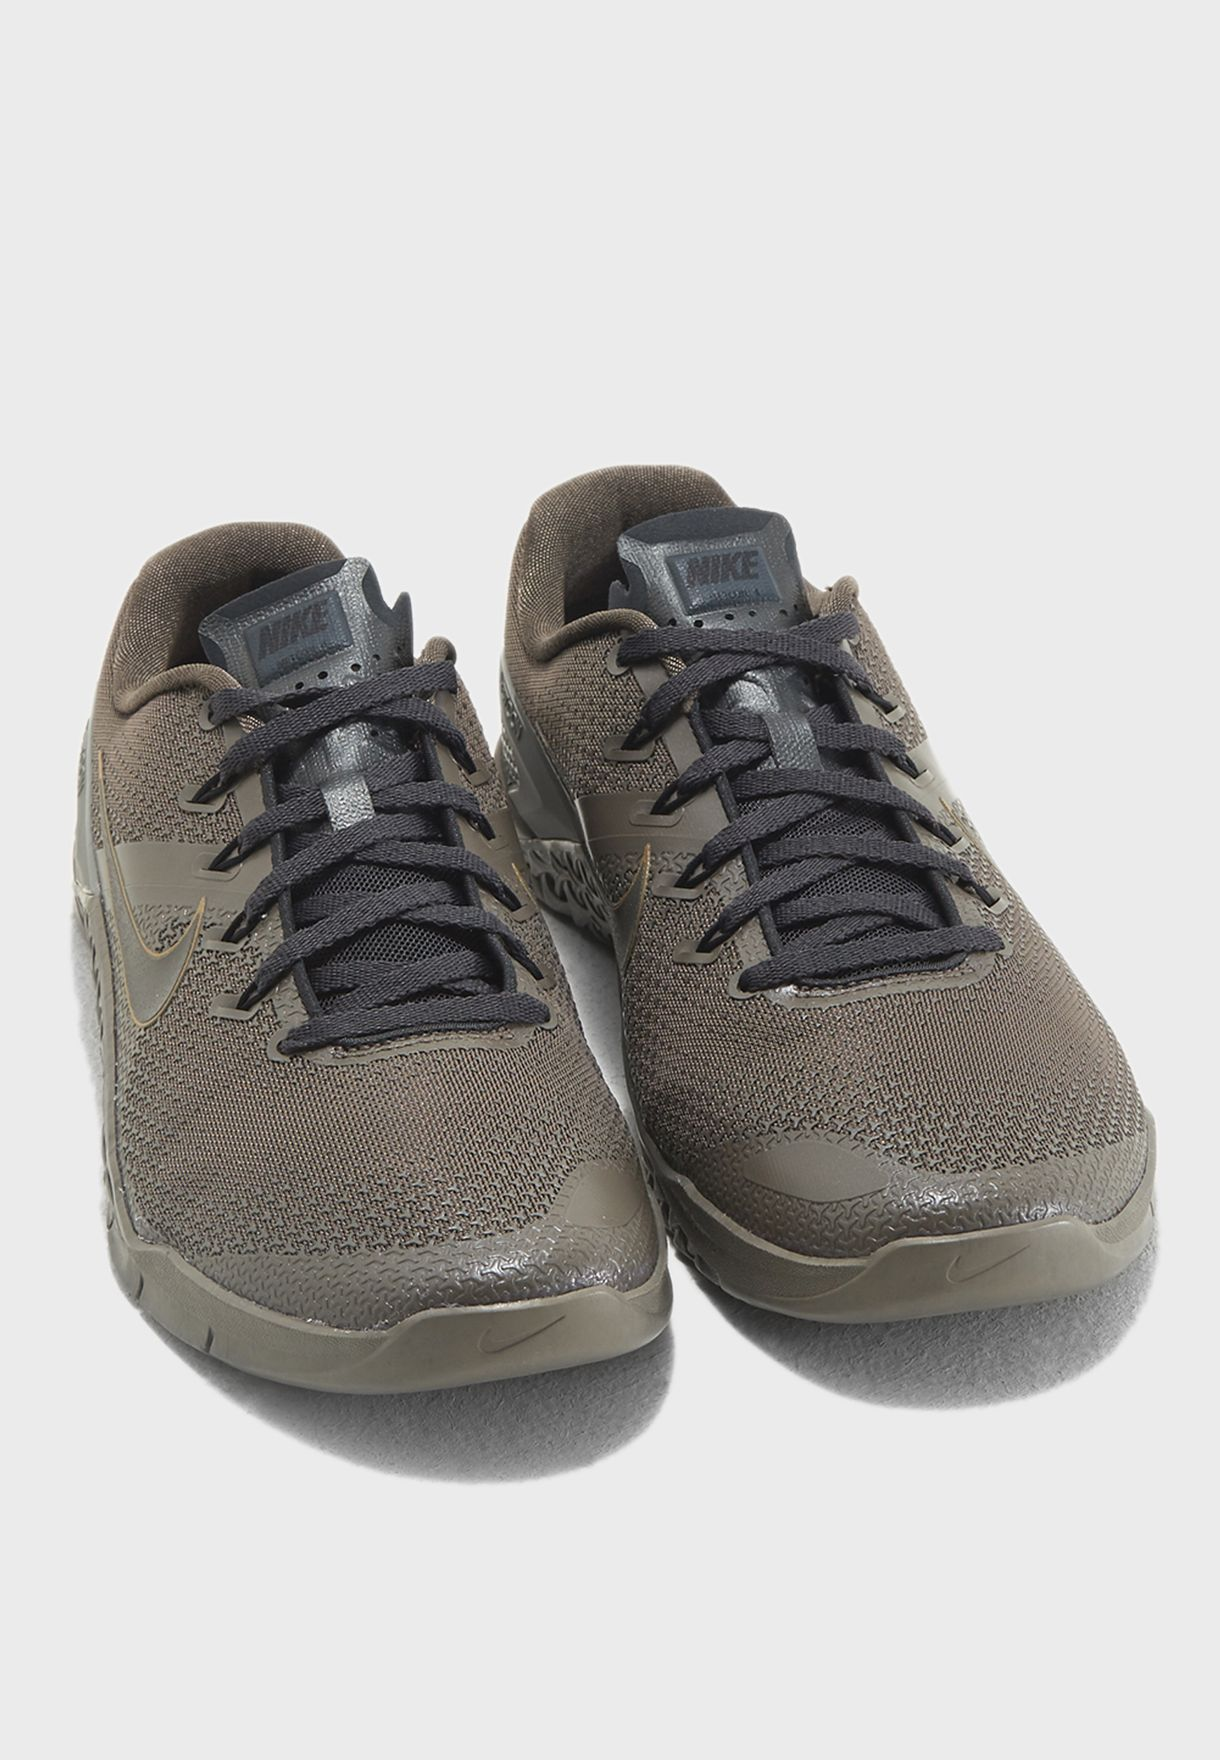 02b0077c8c89 Shop Nike grey Metcon 4 Viking Quest AJ9276-200 for Men in UAE ...